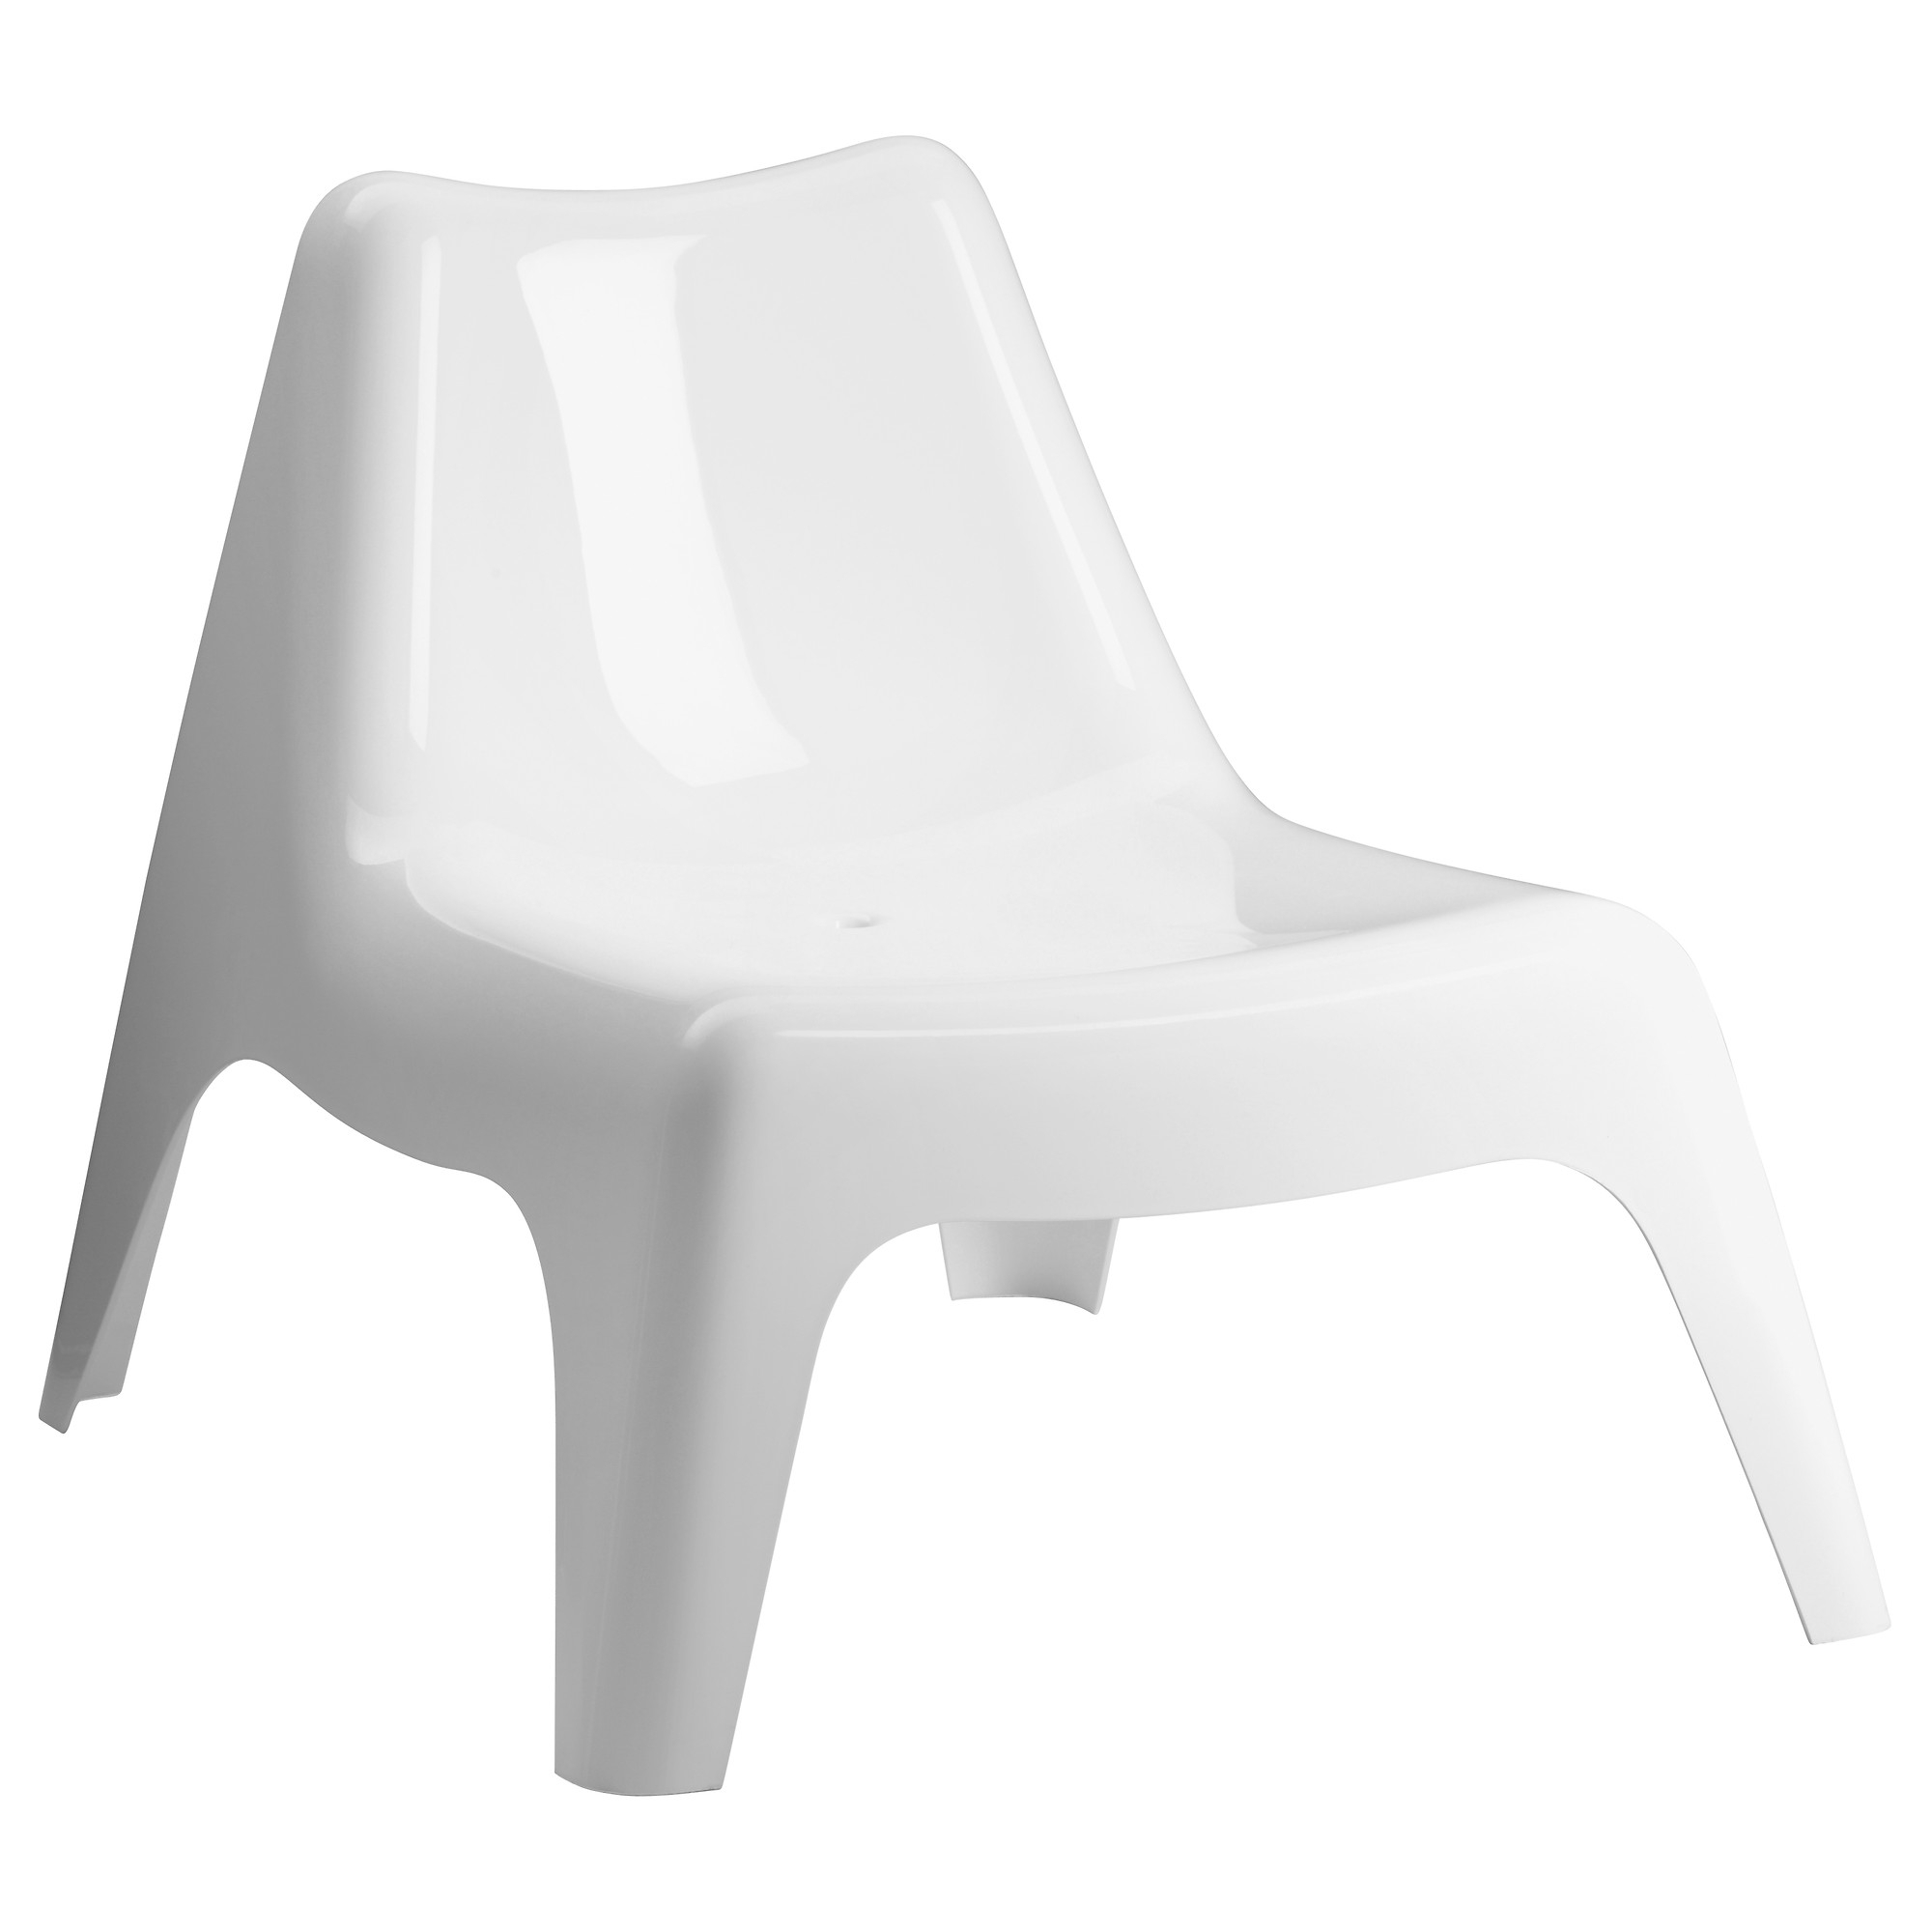 Ikea Outdoor Chaise Lounge Chairs With Regard To Latest Ikea Ps Vågö Chair, Outdoor – White – Ikea (Gallery 7 of 15)